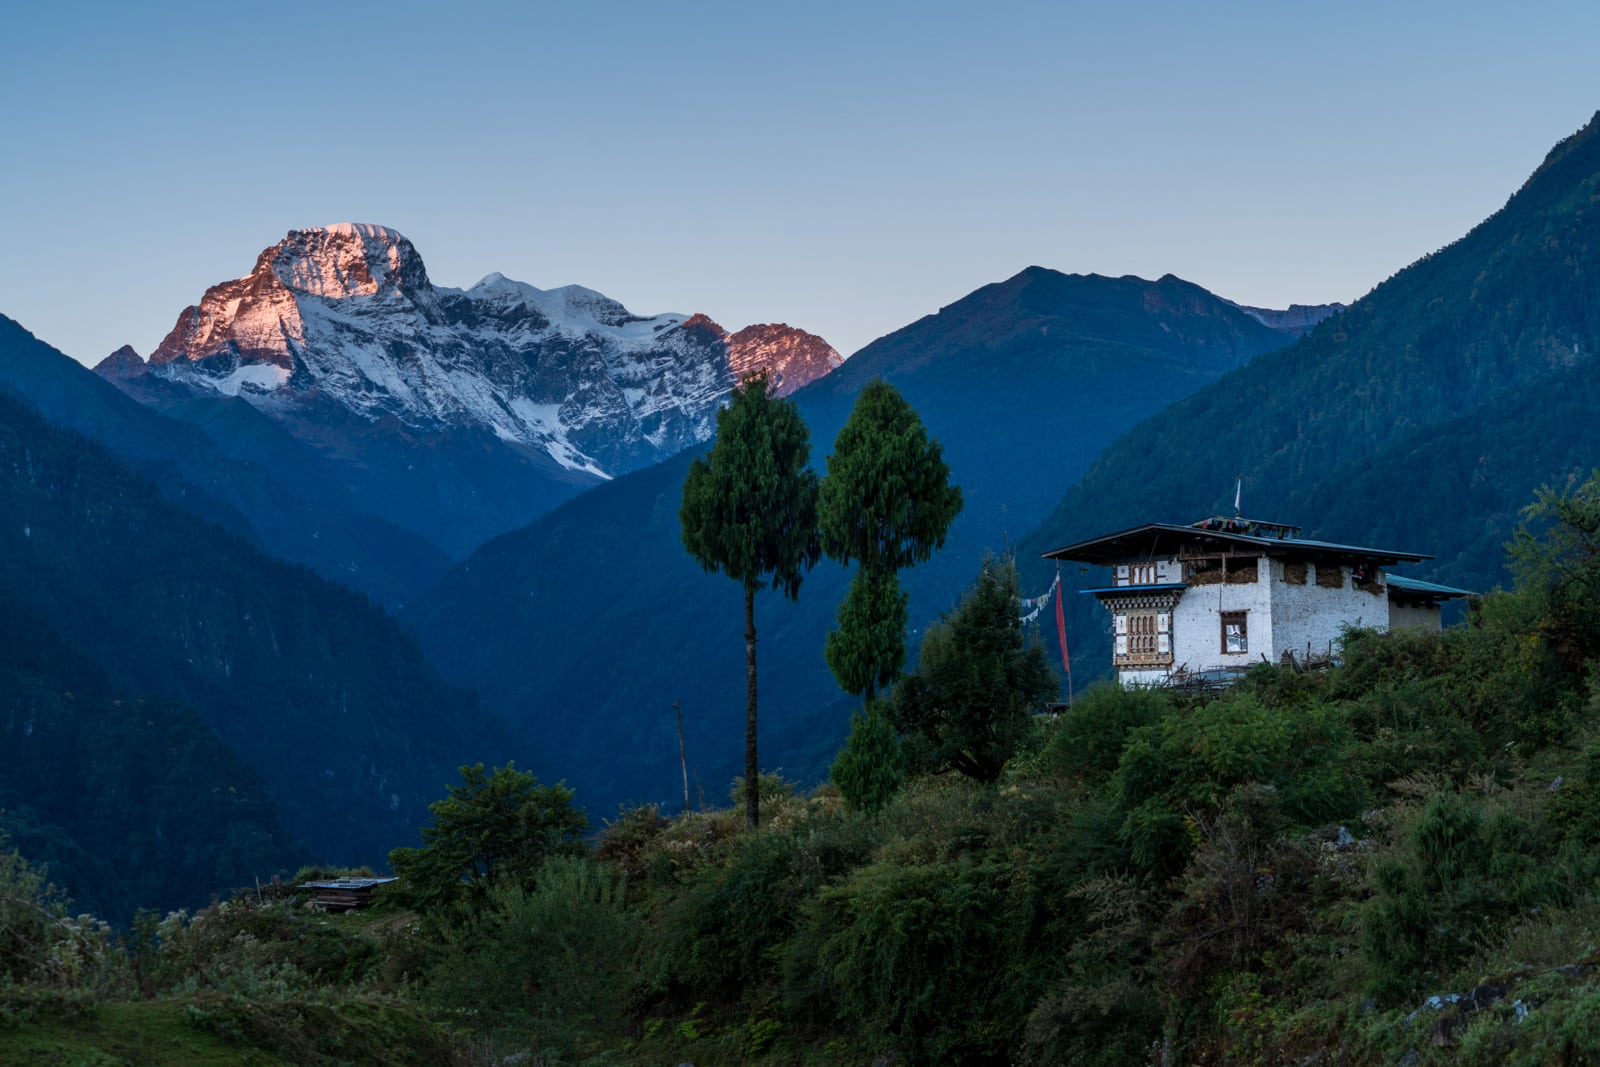 Stunning photos of Bhutan - Sunrise over mountains overlooking Gasa - Lost With Purpose travel blog